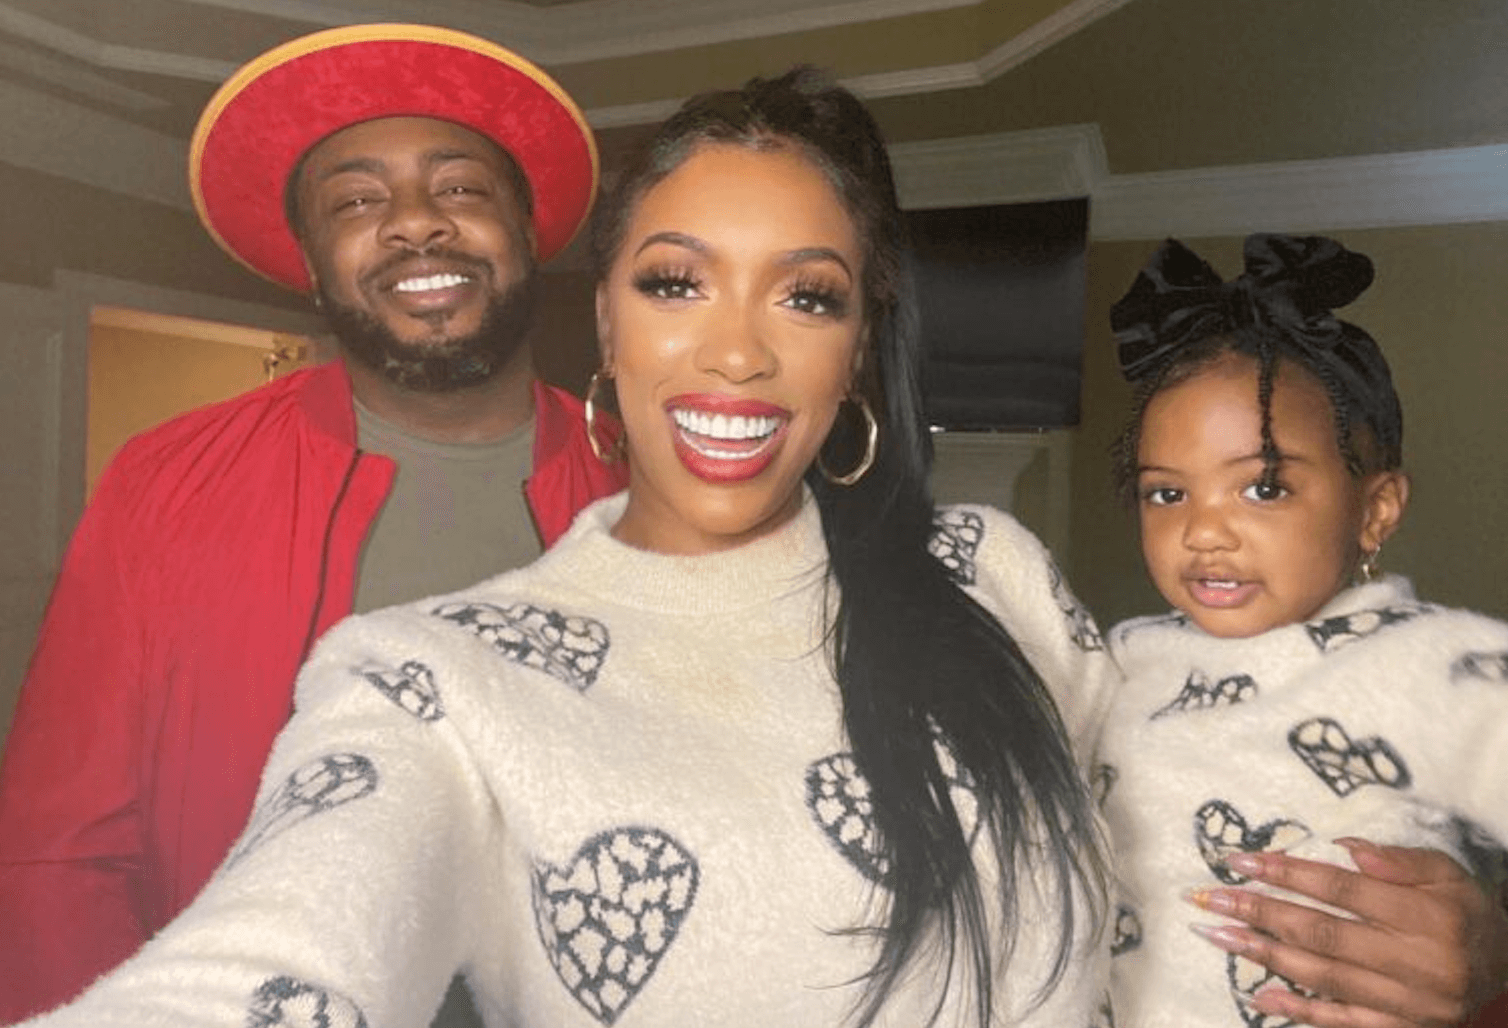 Porsha Williams Drops A Motivational Message About Life – Check It Out Here